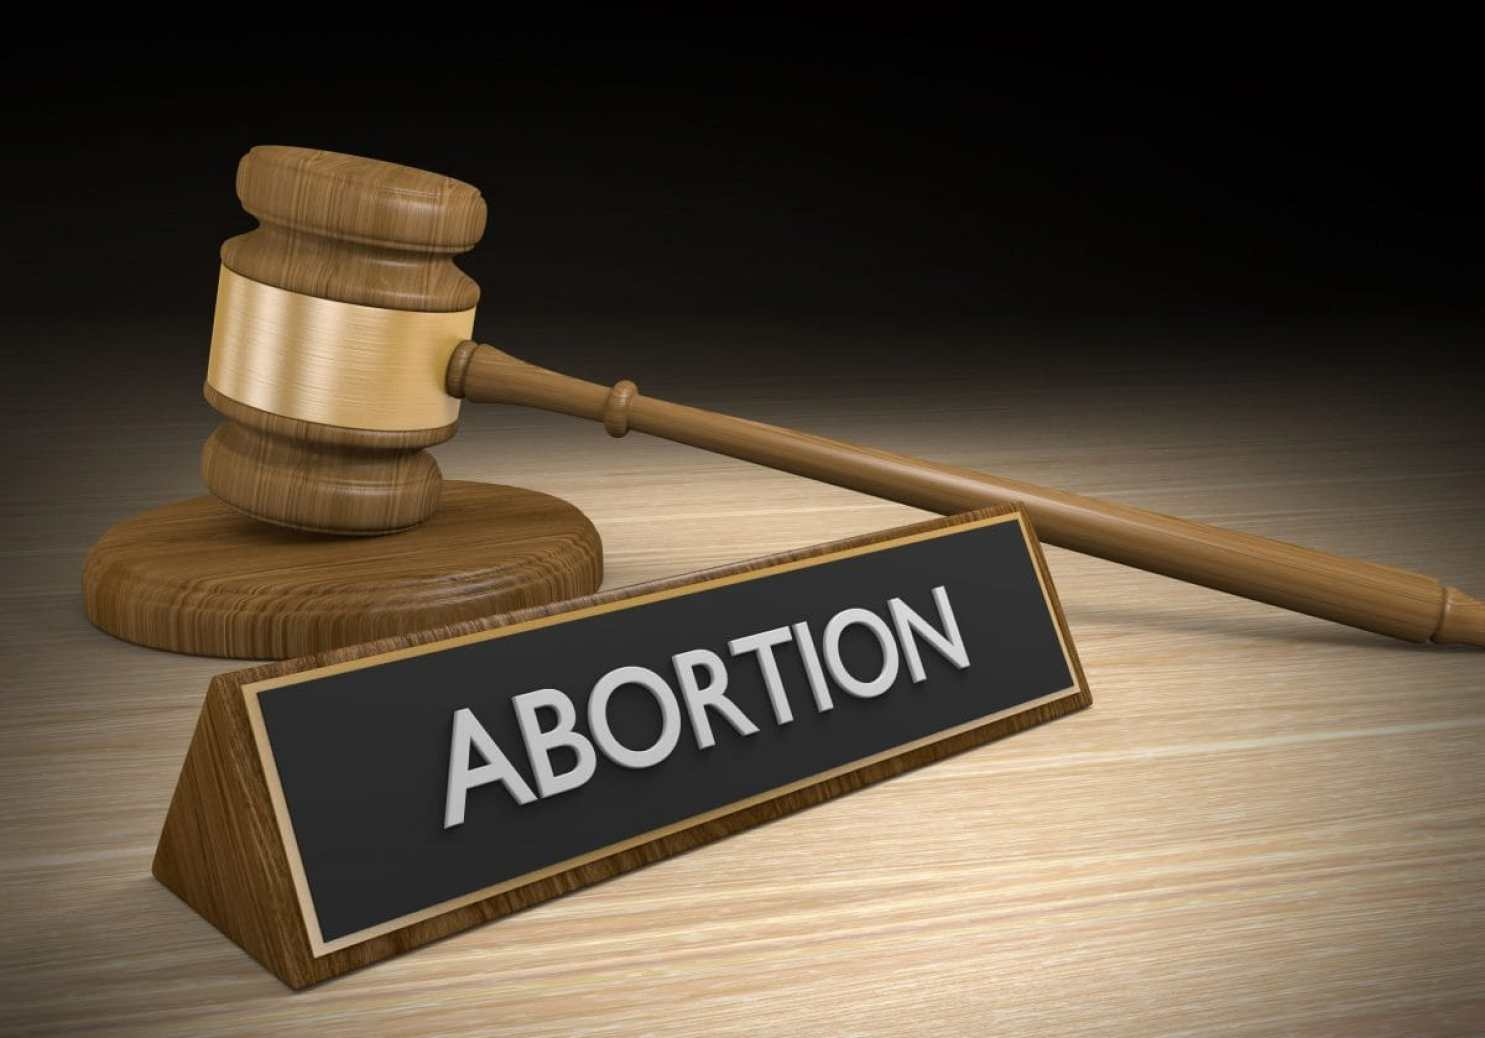 45352241 - court legal concept of abortion law, Copyright: kagenmi / 123RF Stock Photo. Several cases are provoking debate around India's abortion law - and whether it's time for change. Concept of Indian abortion law illustrated.